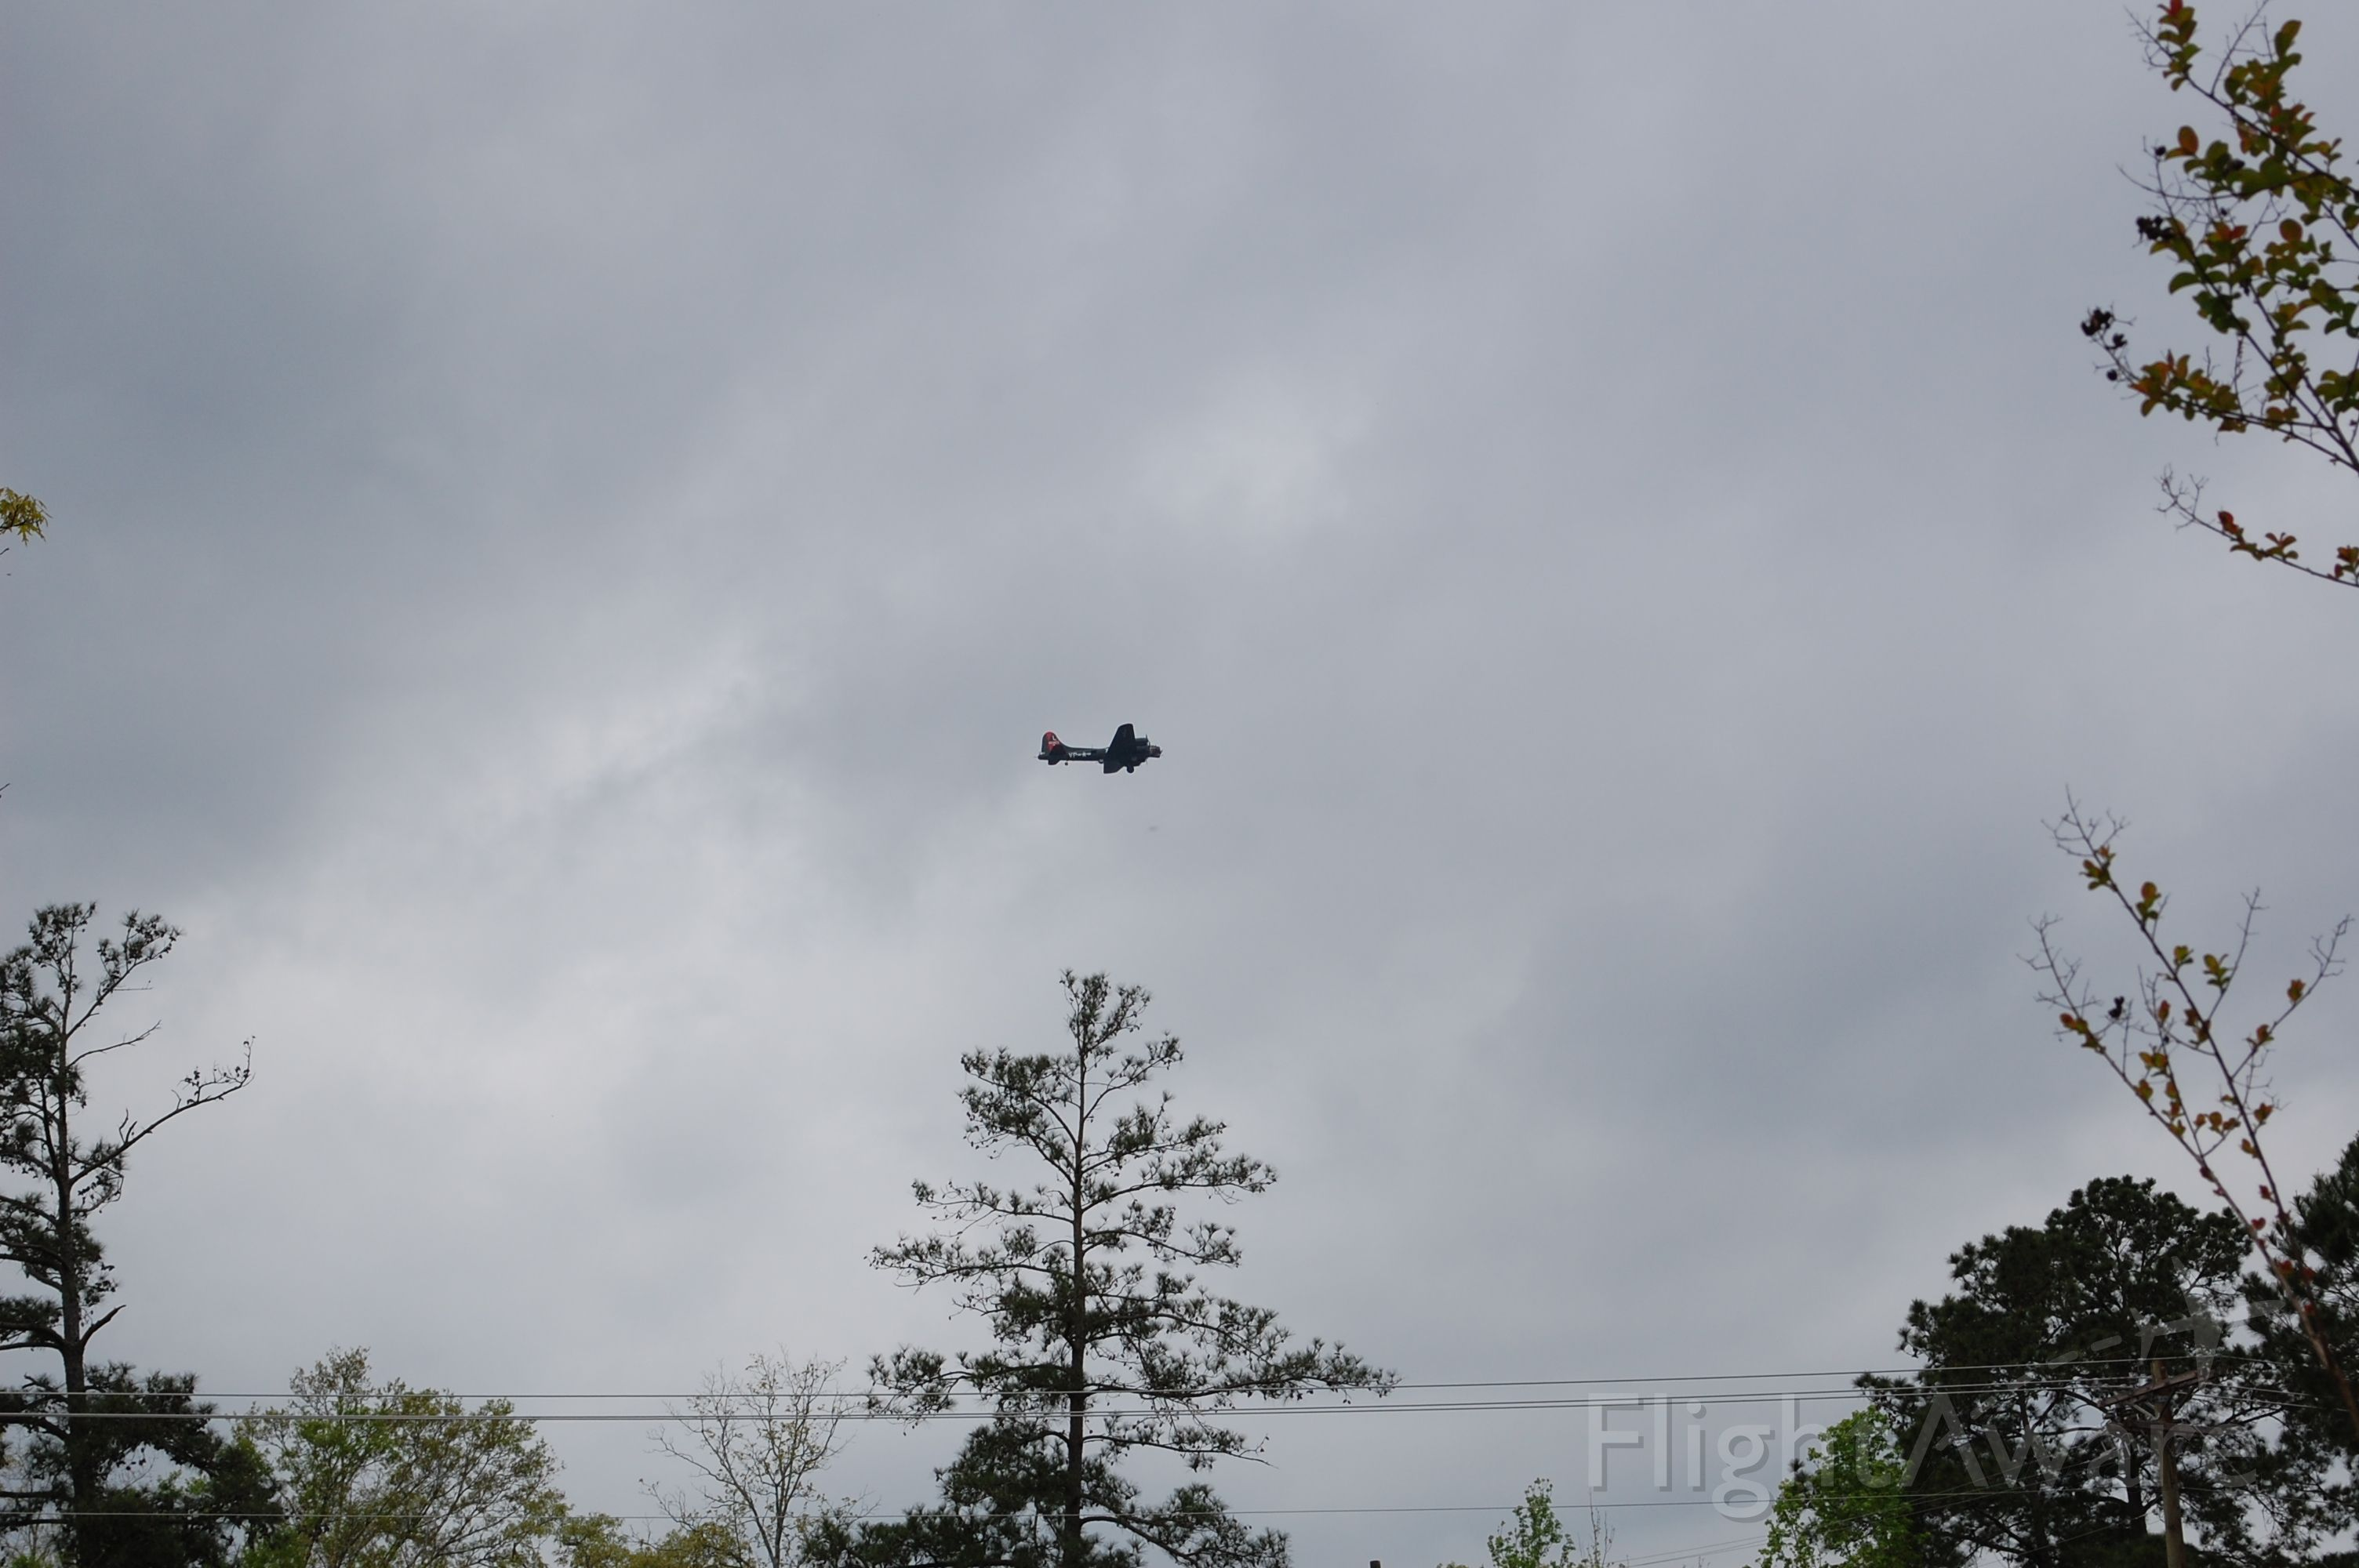 — — - <br>B17 flying around kcxo, I will try to go to airport to get a better pic